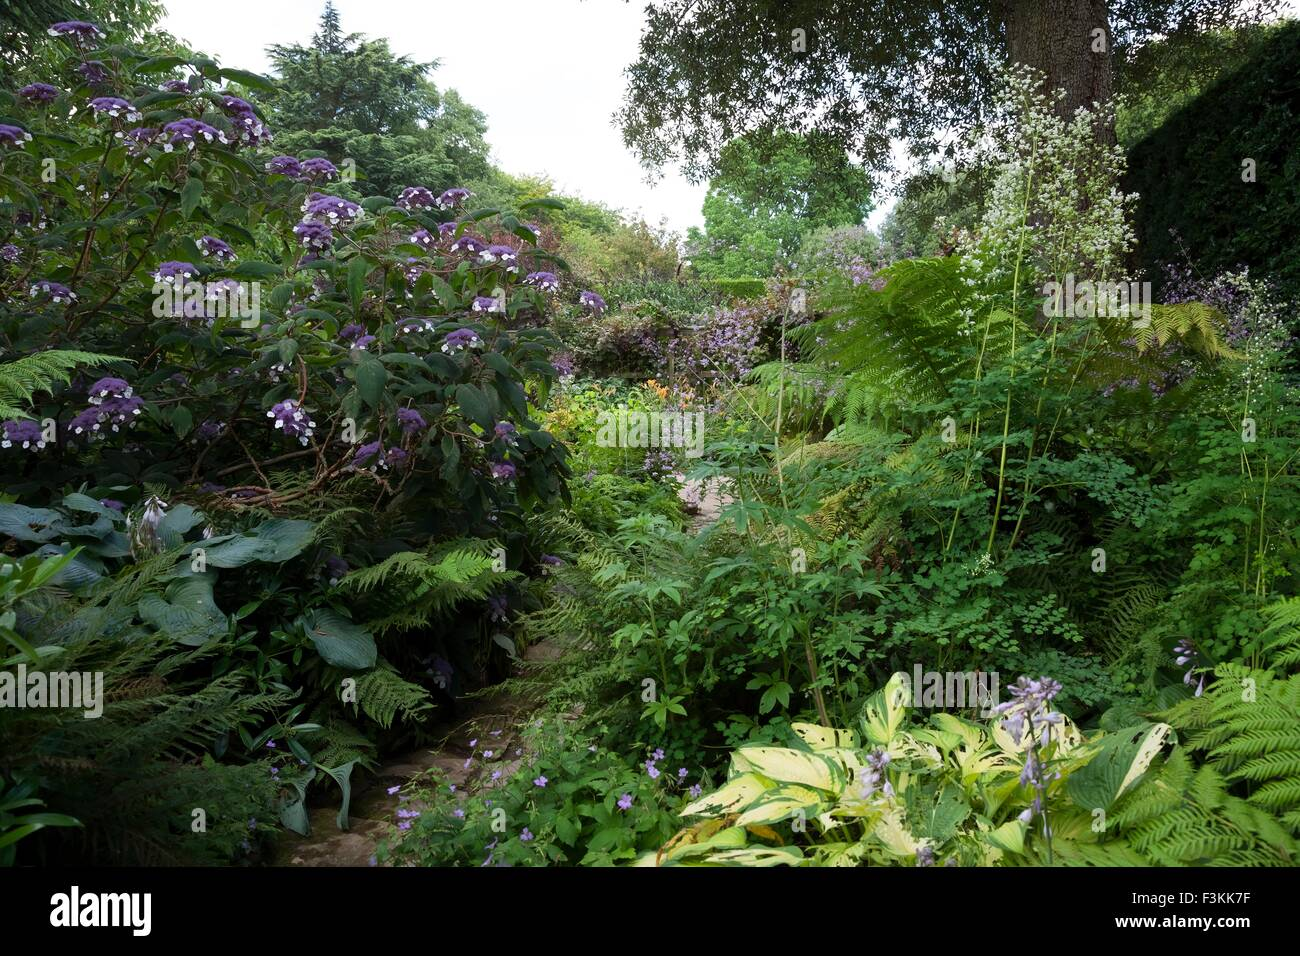 Woodland garden with Hydrangeas, England - Stock Image